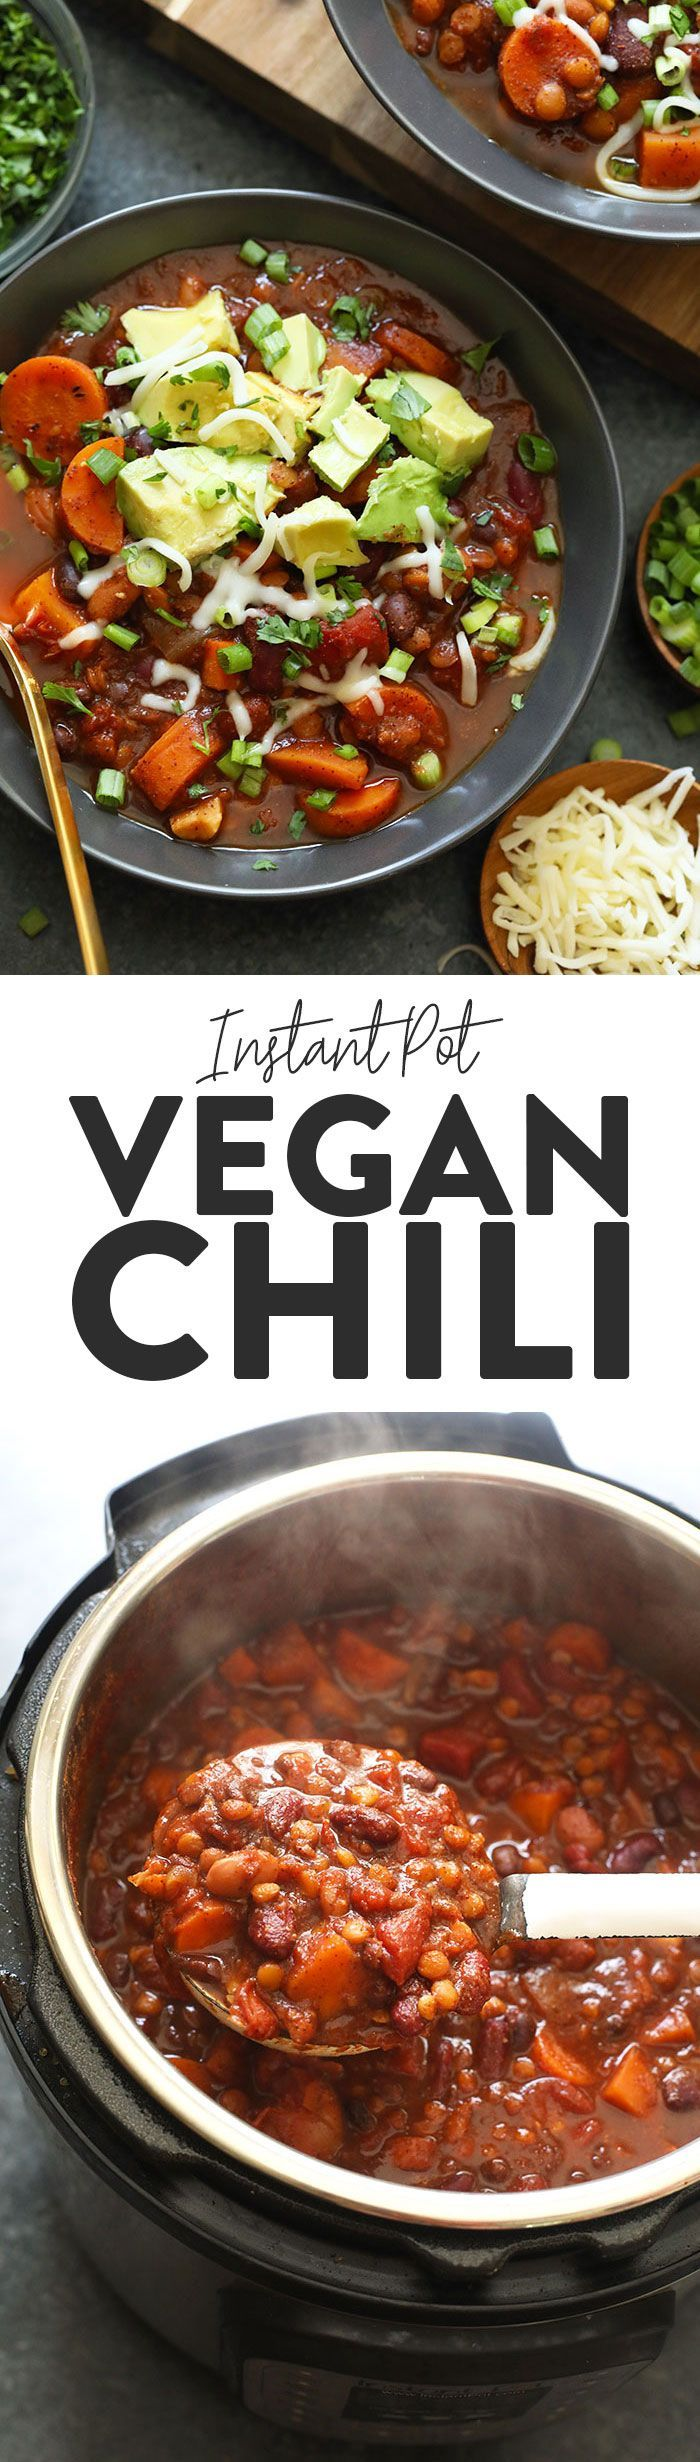 This Vegan Instant Pot Chili is an easy weeknight meal that everyone will love! It is packed with fiber from lentils and beans, as well as delicious vegetables. This Instant Pot Chili is vegan and is the perfect meal-prep meal for the week. Make it now! Vegan Instant Pot Chili is an easy weeknight meal that everyone will love! It is packed with fiber from lentils and beans, as well as delicious vegetables. This Instant Pot Chili is vegan and is the perfect meal-prep meal for the week. Make it now!